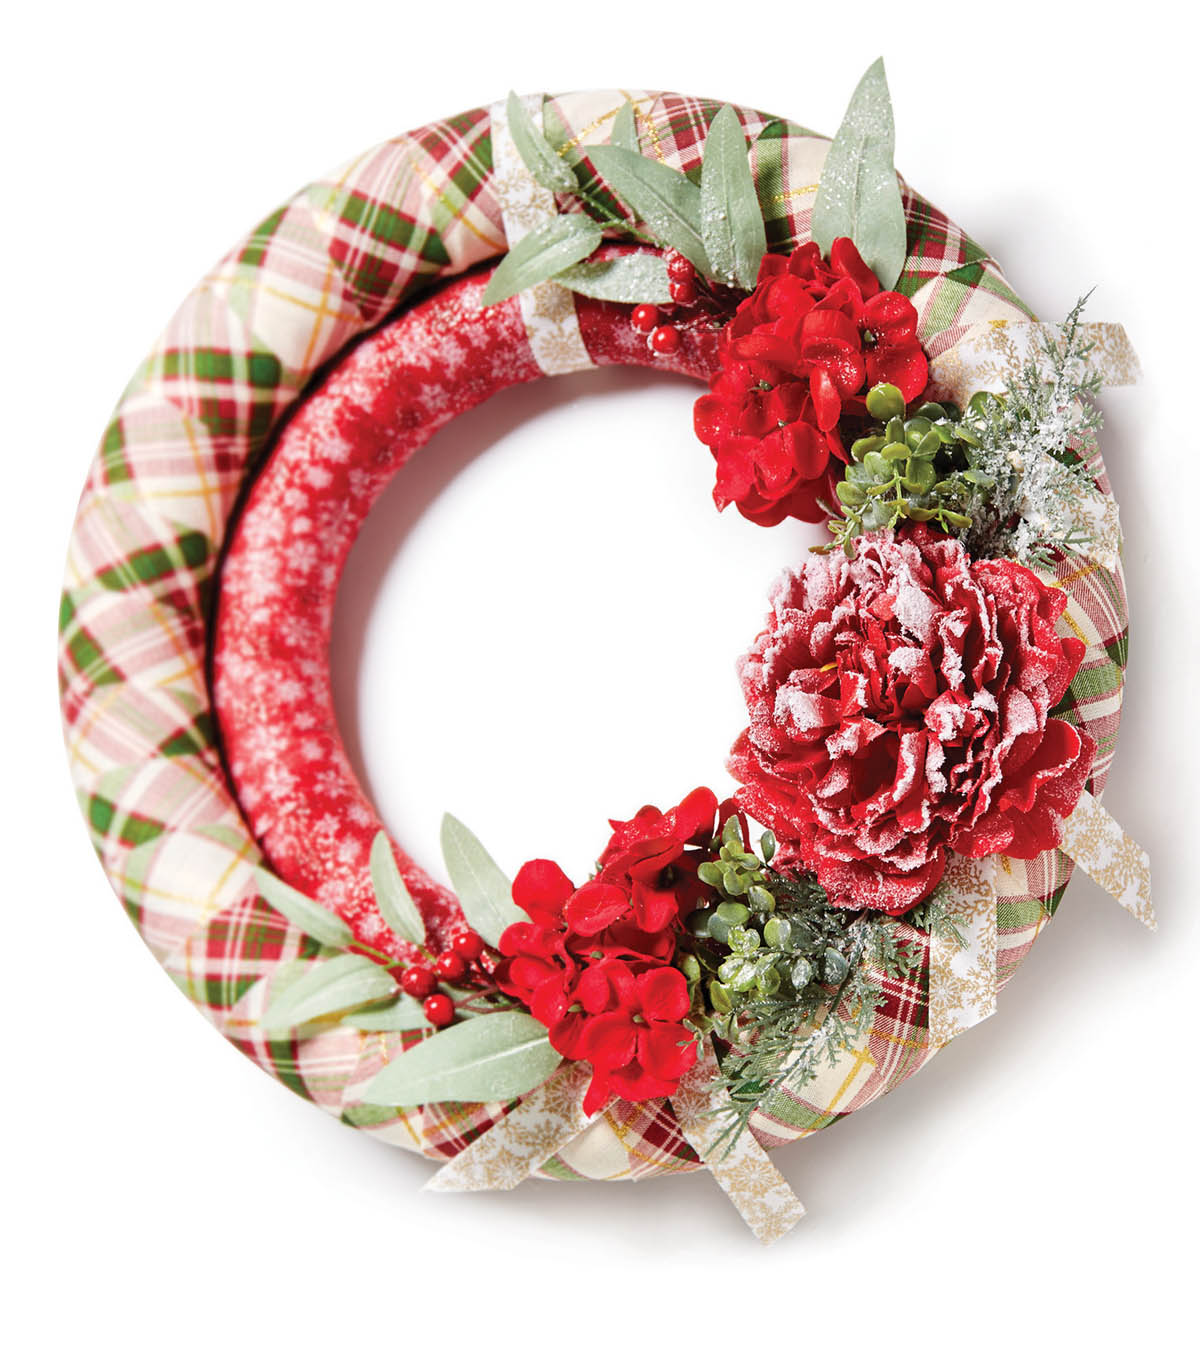 How To Make A Double Fabric Wrapped Wreath | JOANN